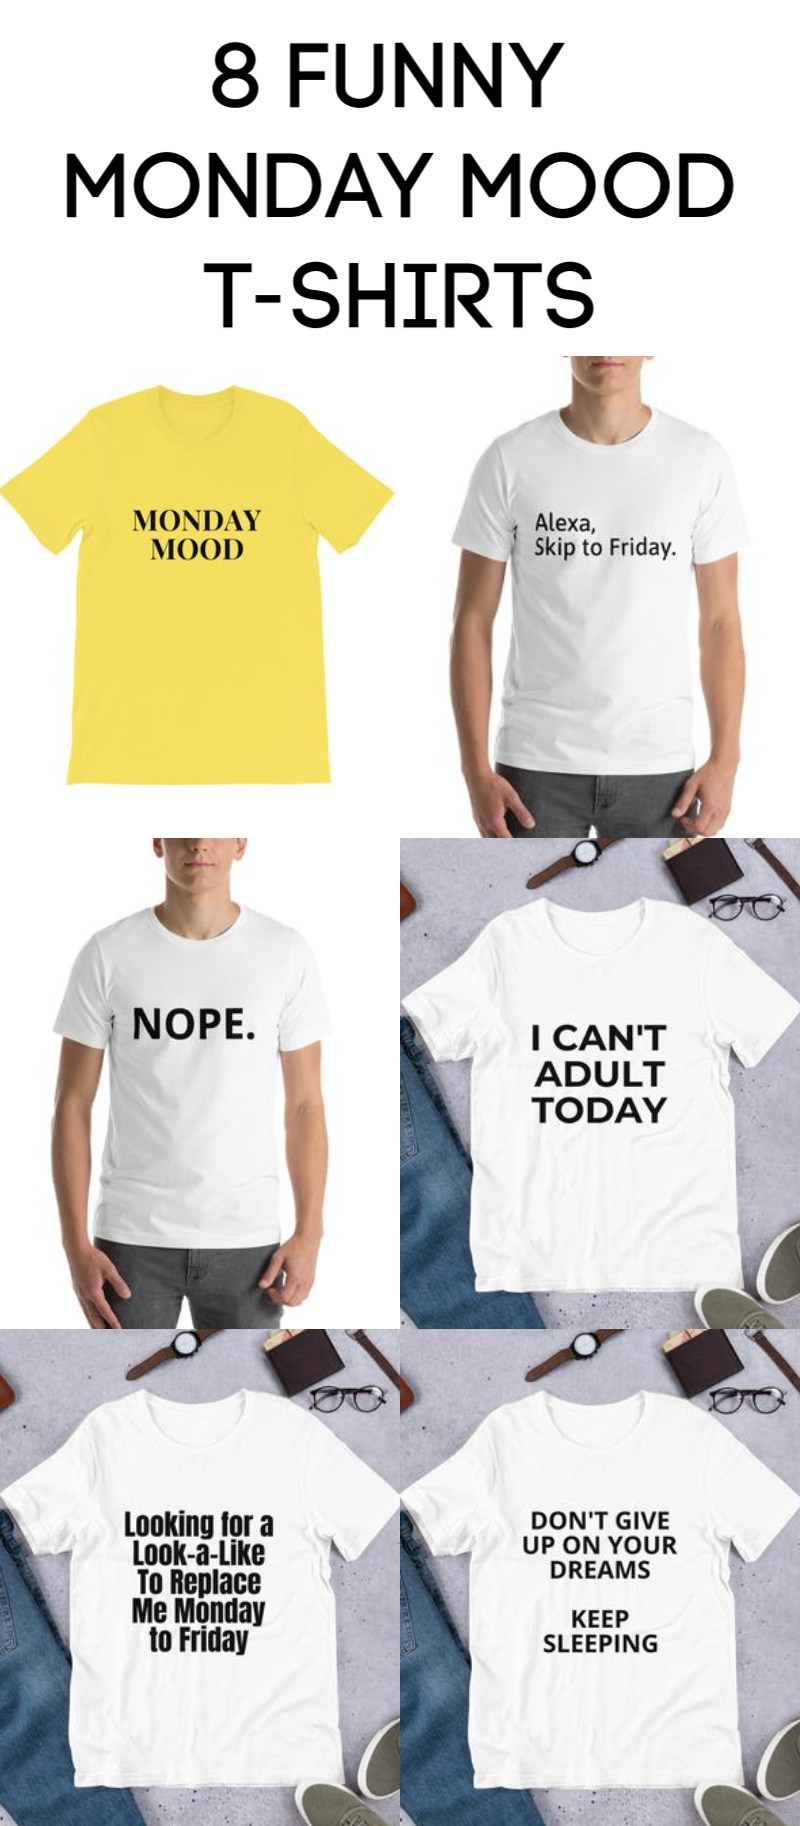 8 Funny, Sarcastic Monday Mood T-shirts